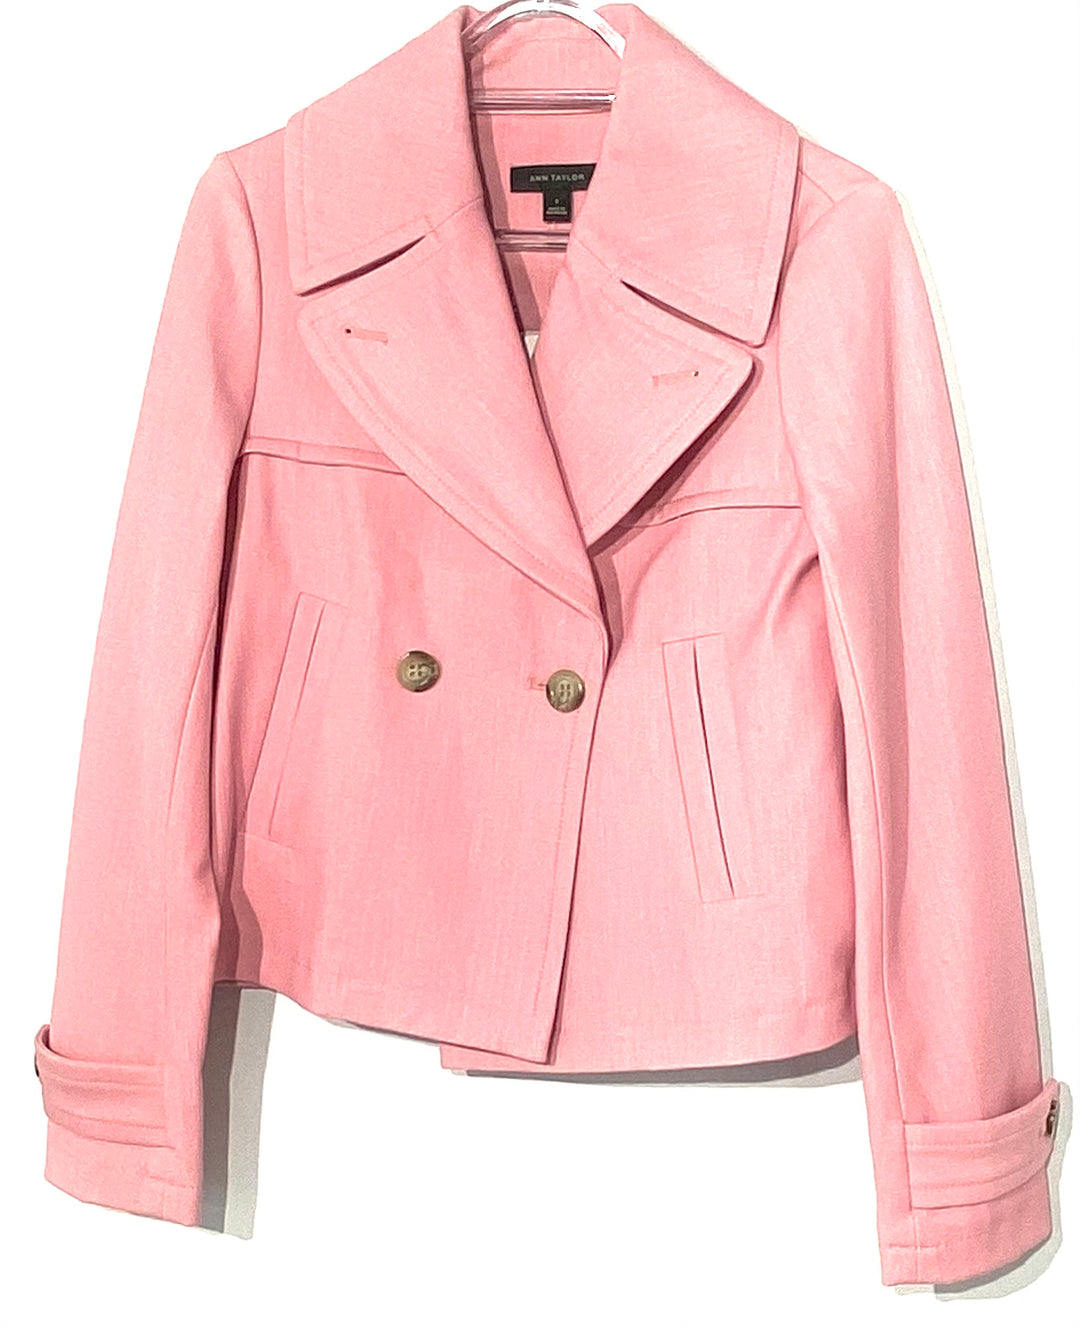 Primary Photo - BRAND: ANN TAYLOR <BR>STYLE: BLAZER JACKET <BR>COLOR: LIGHT PINK <BR>SIZE: XS /0<BR>SKU: 262-26241-42315